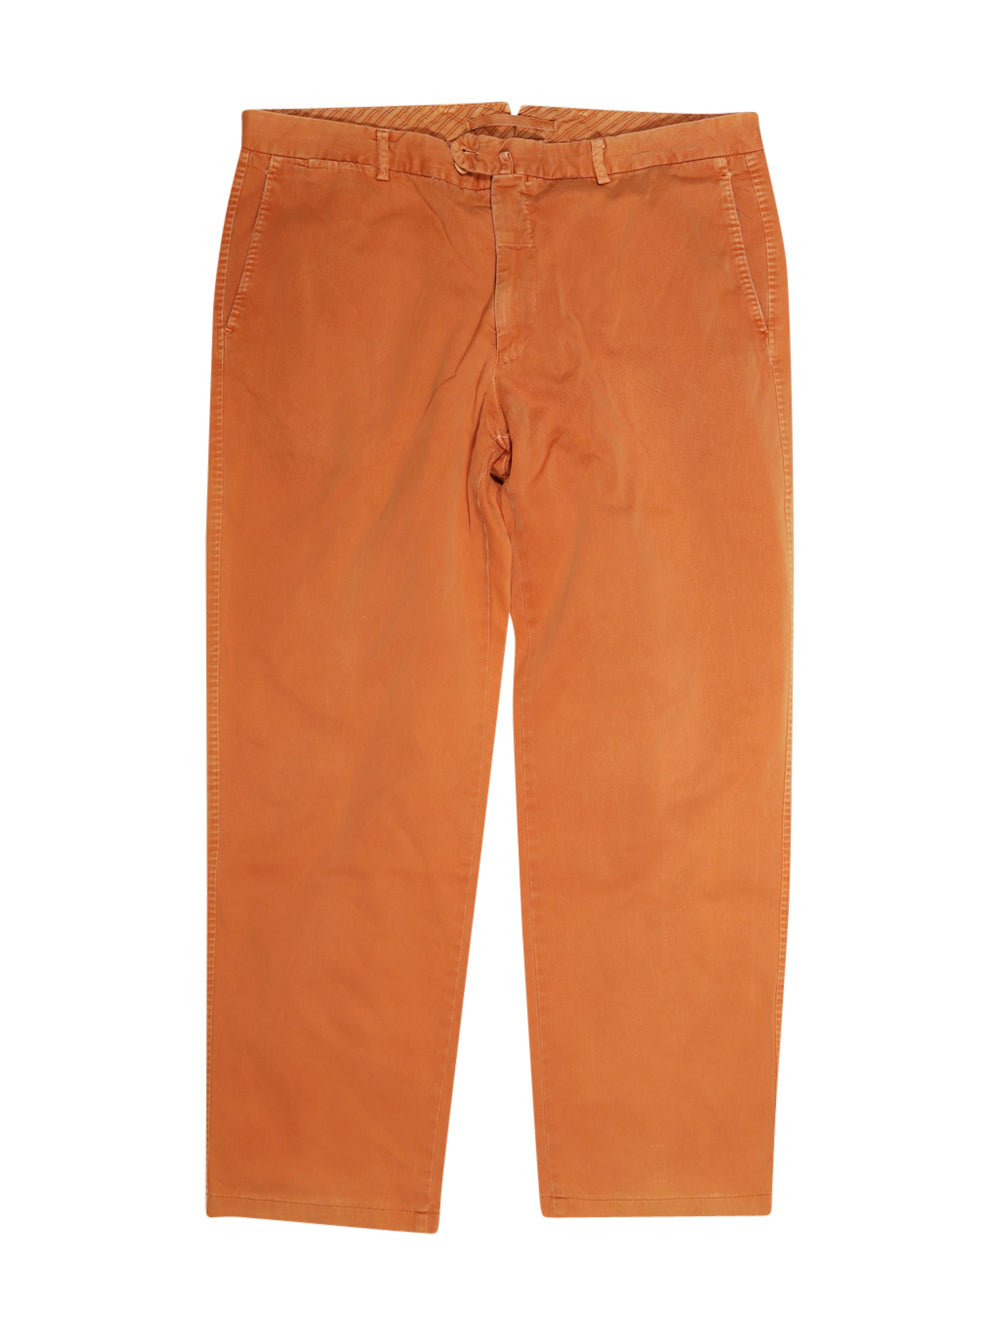 Front photo of Preloved Ugo fabiani Orange Man's trousers - size 46/XXXL